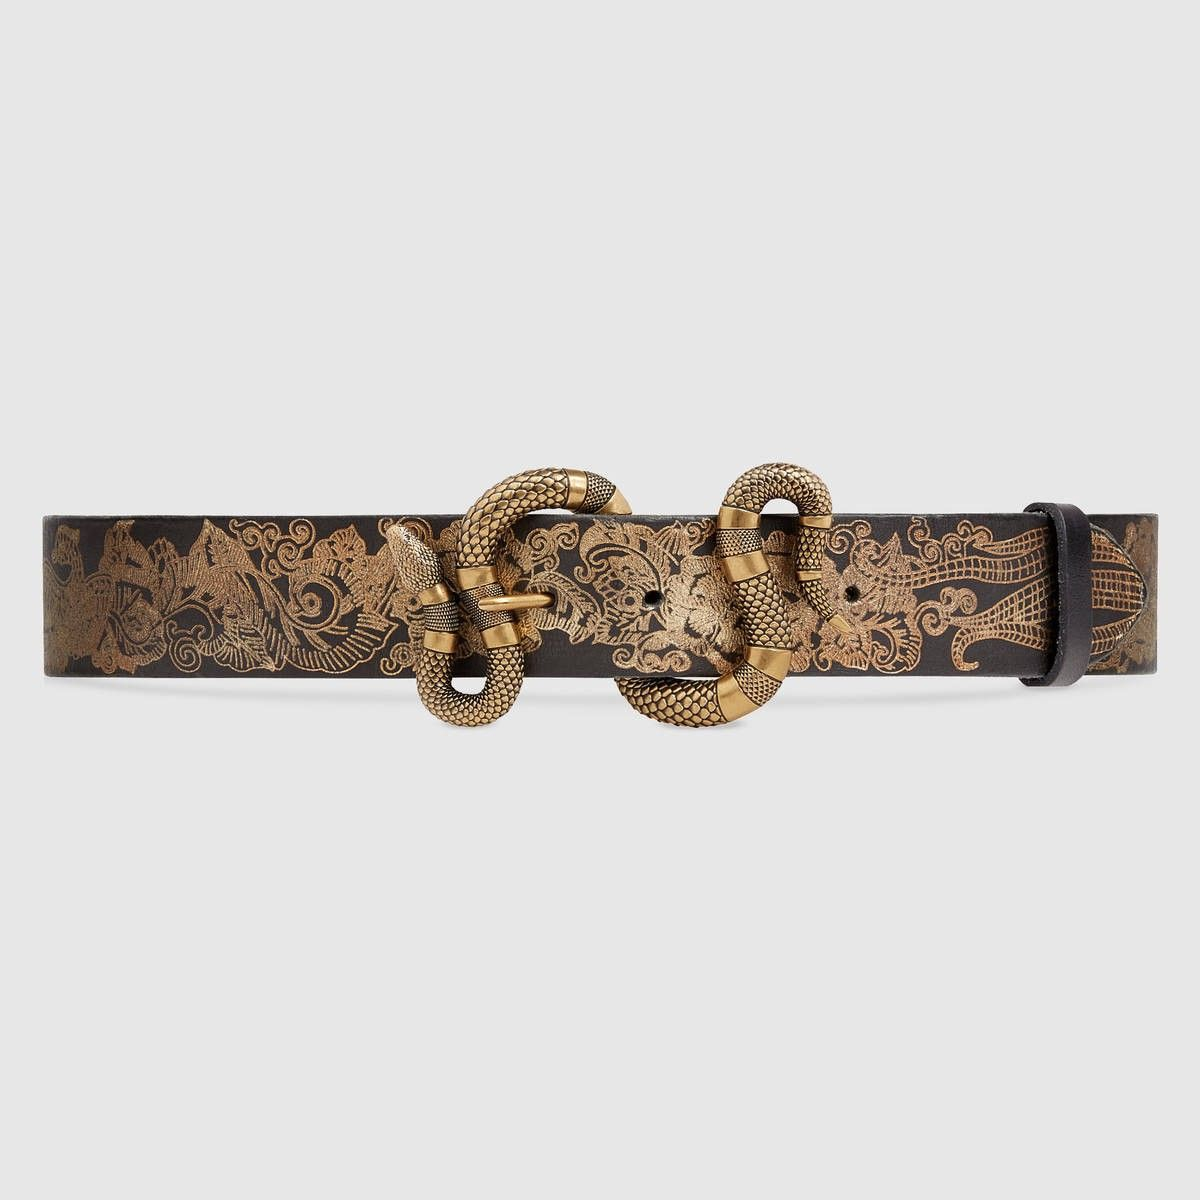 c01a01c820 GUCCI Printed leather belt with snake buckle - black leather. #gucci ...